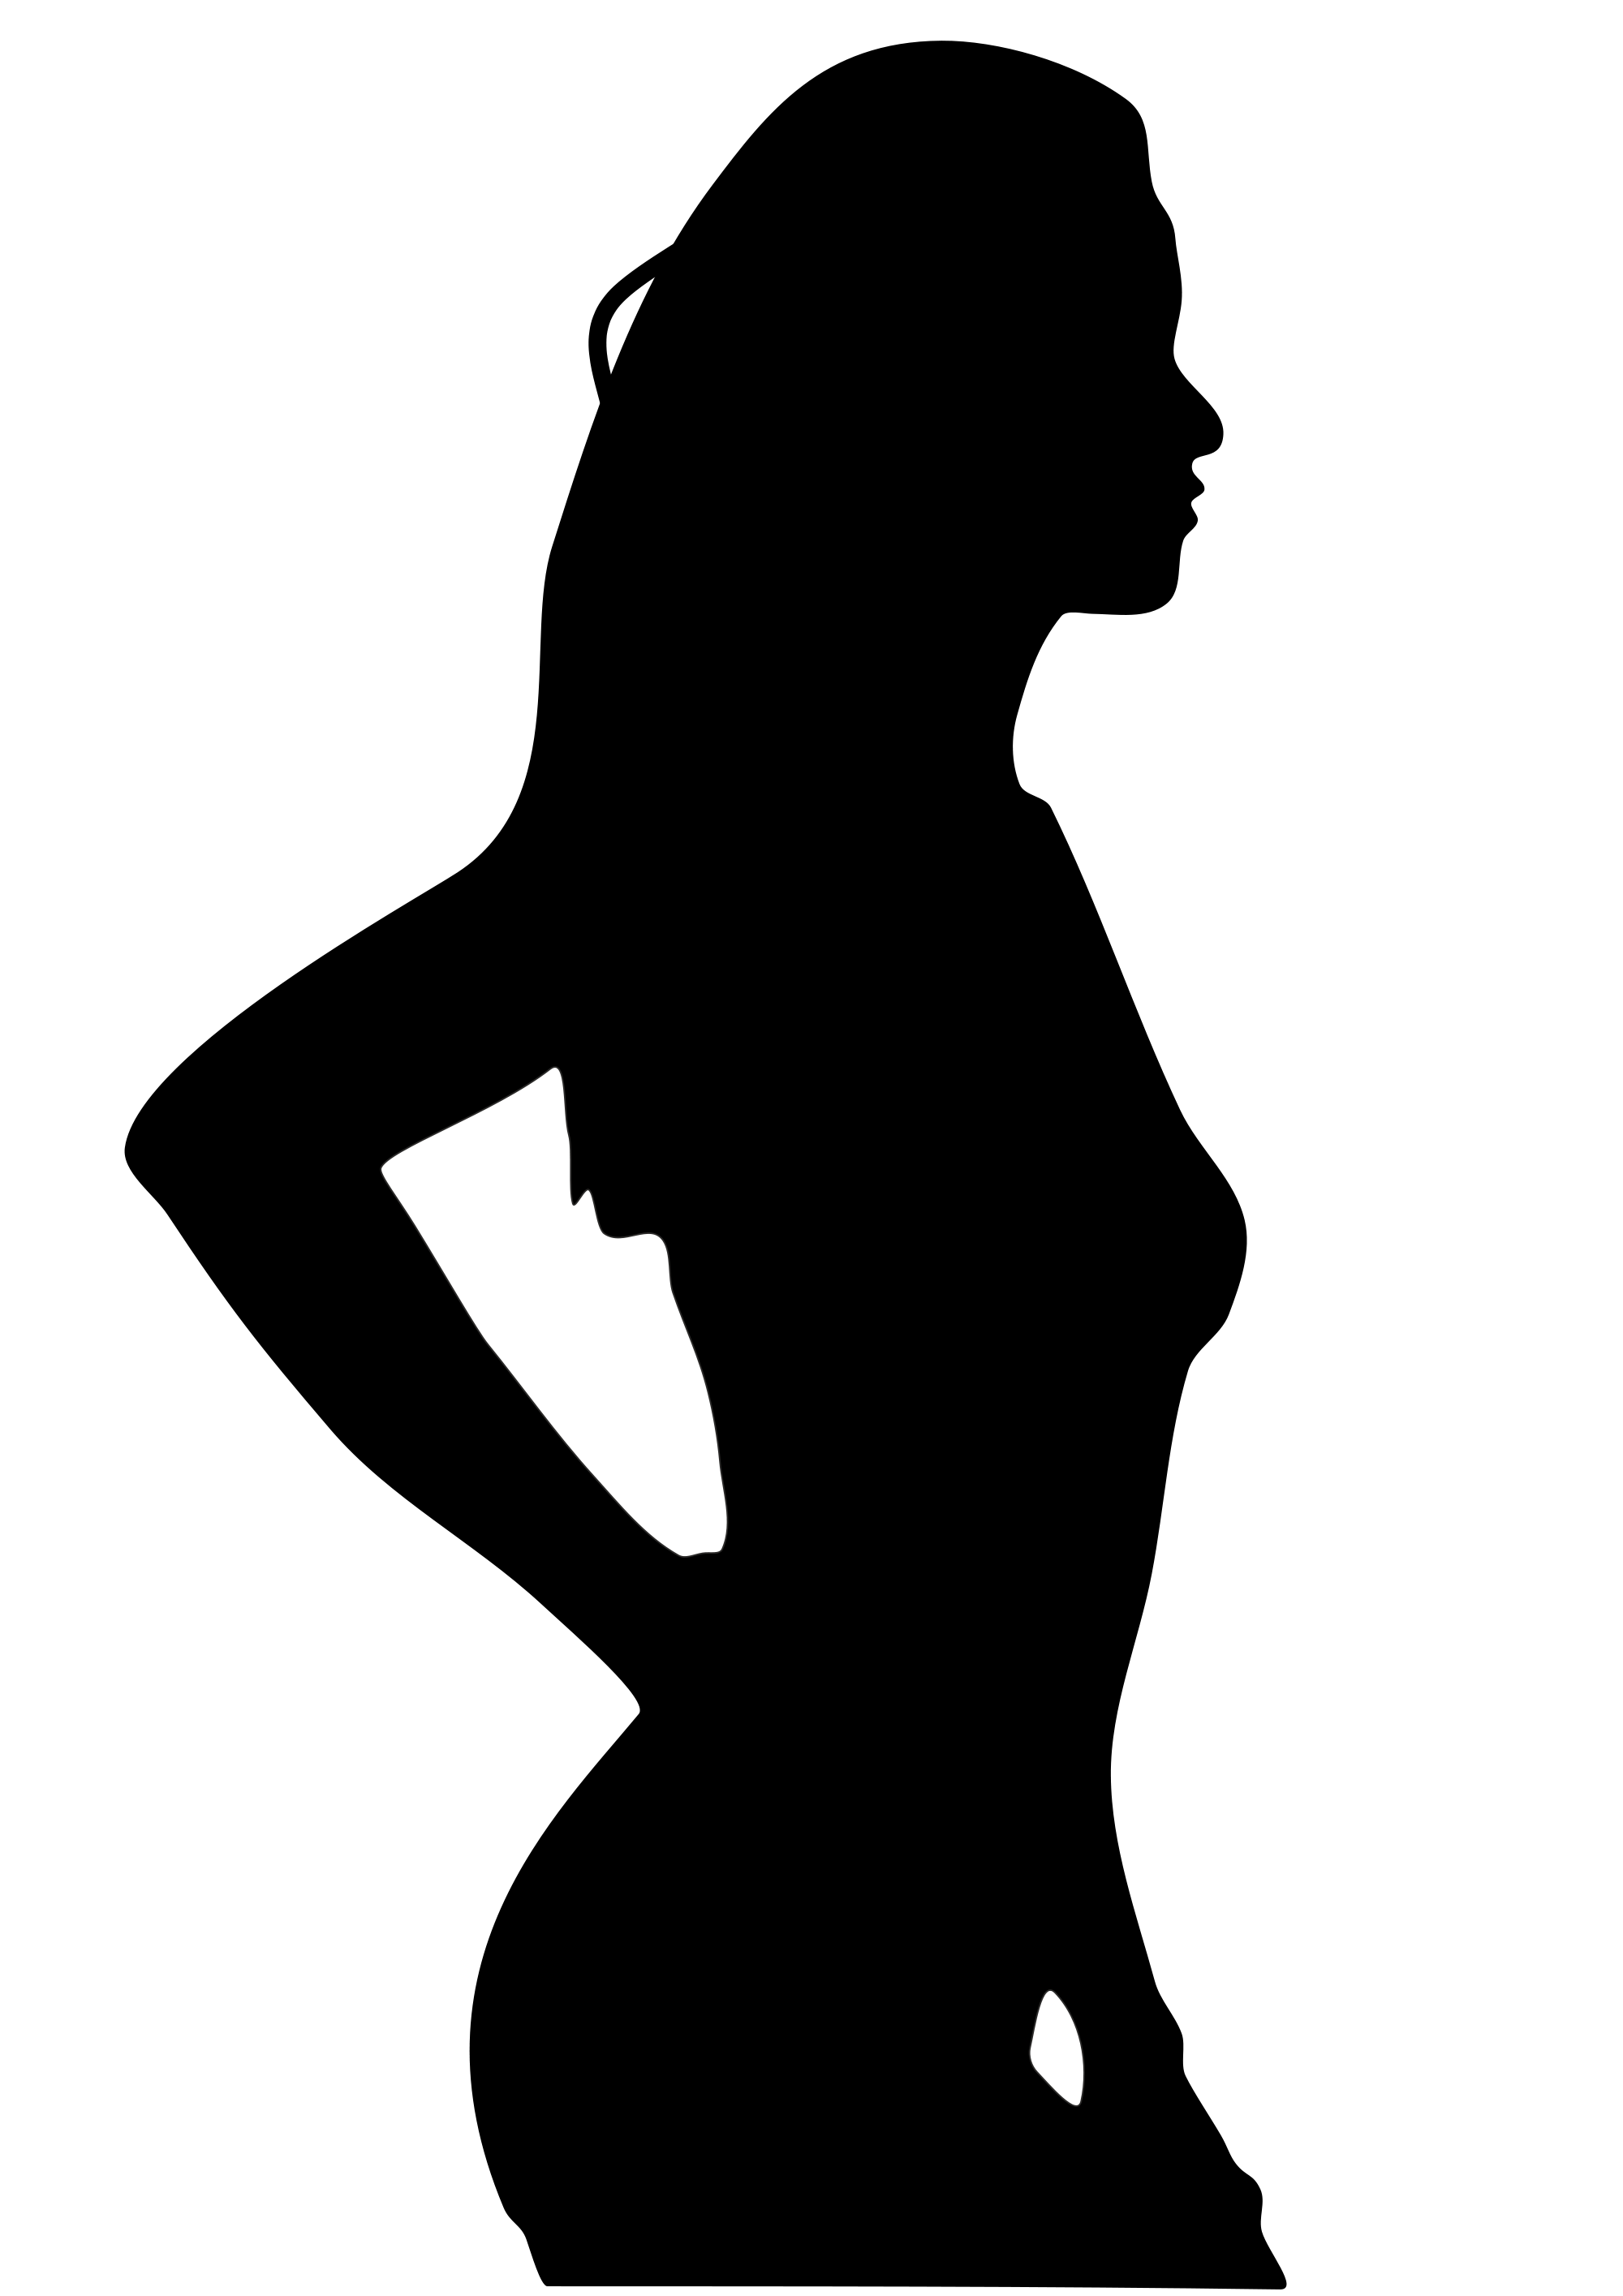 pregnant silhouette png